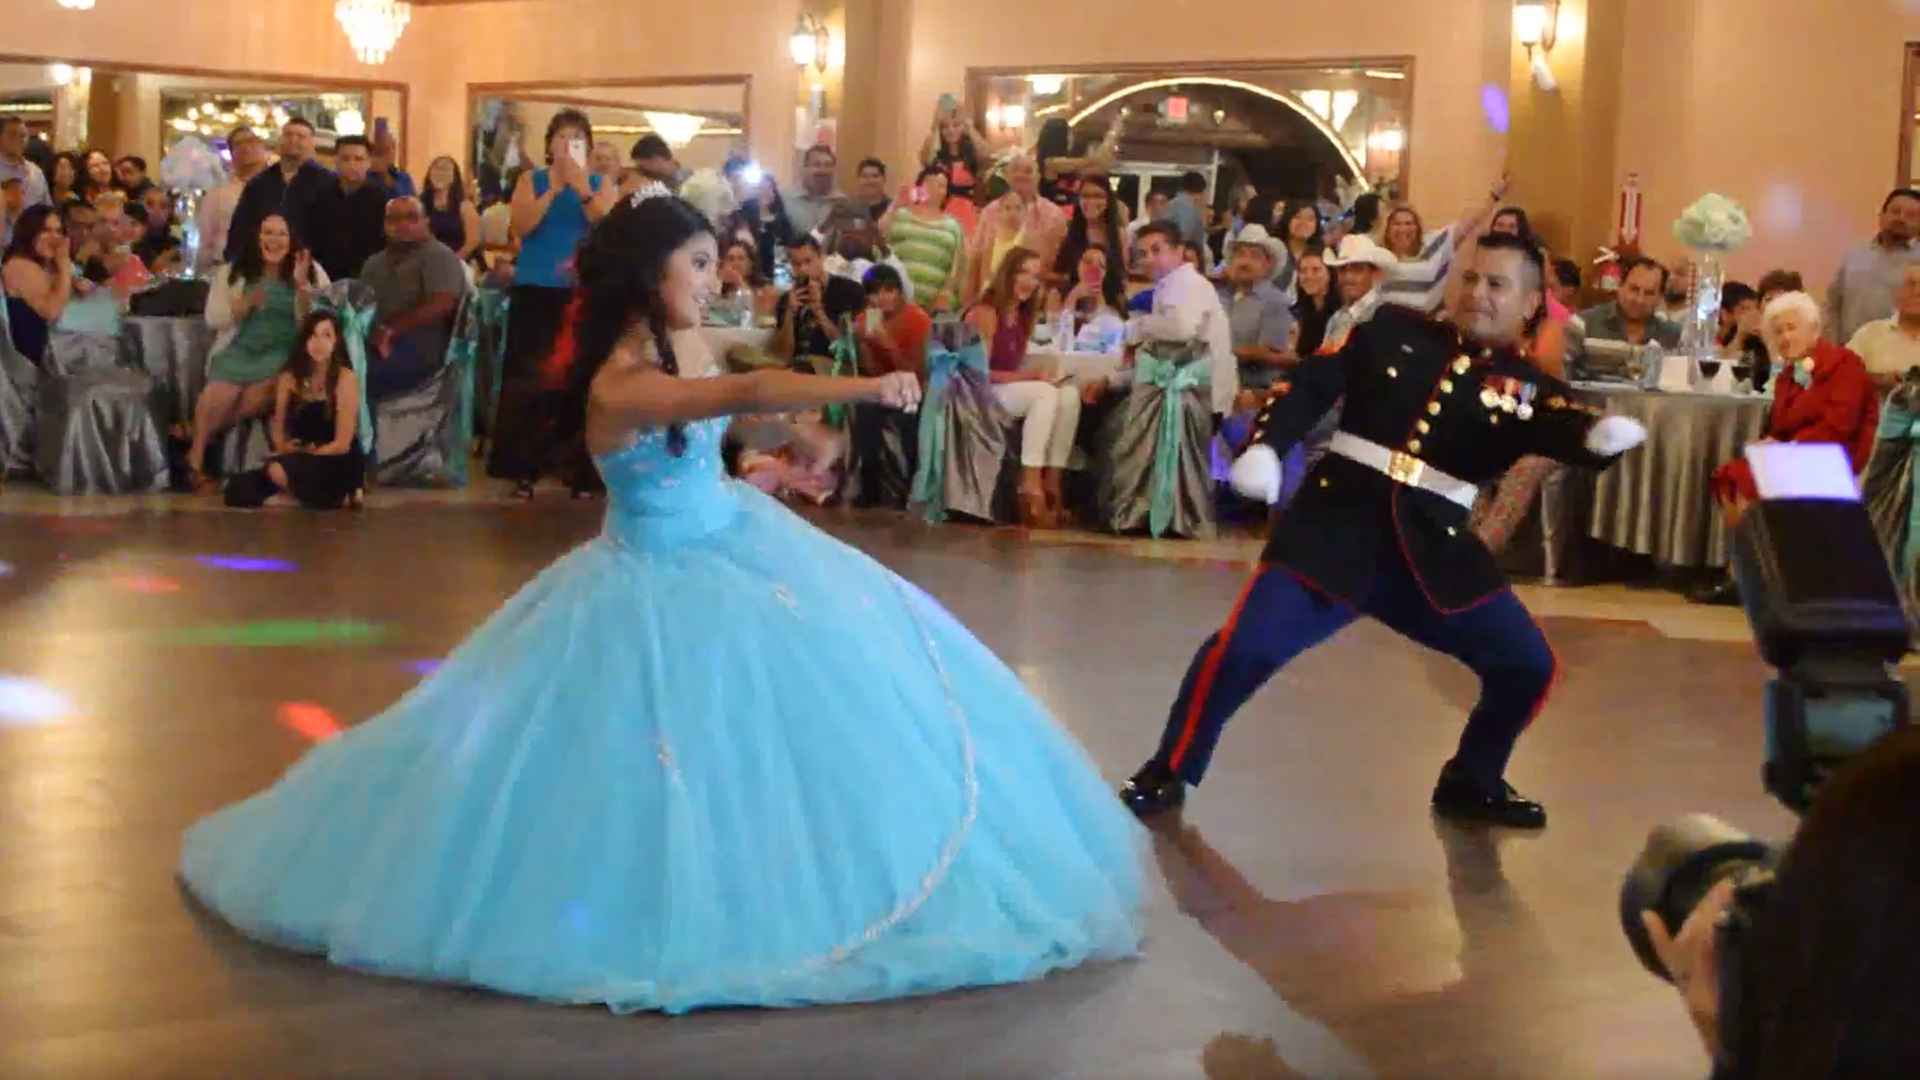 294b7602d52 Girl s epic dance with dad is highlight of her quinceanera